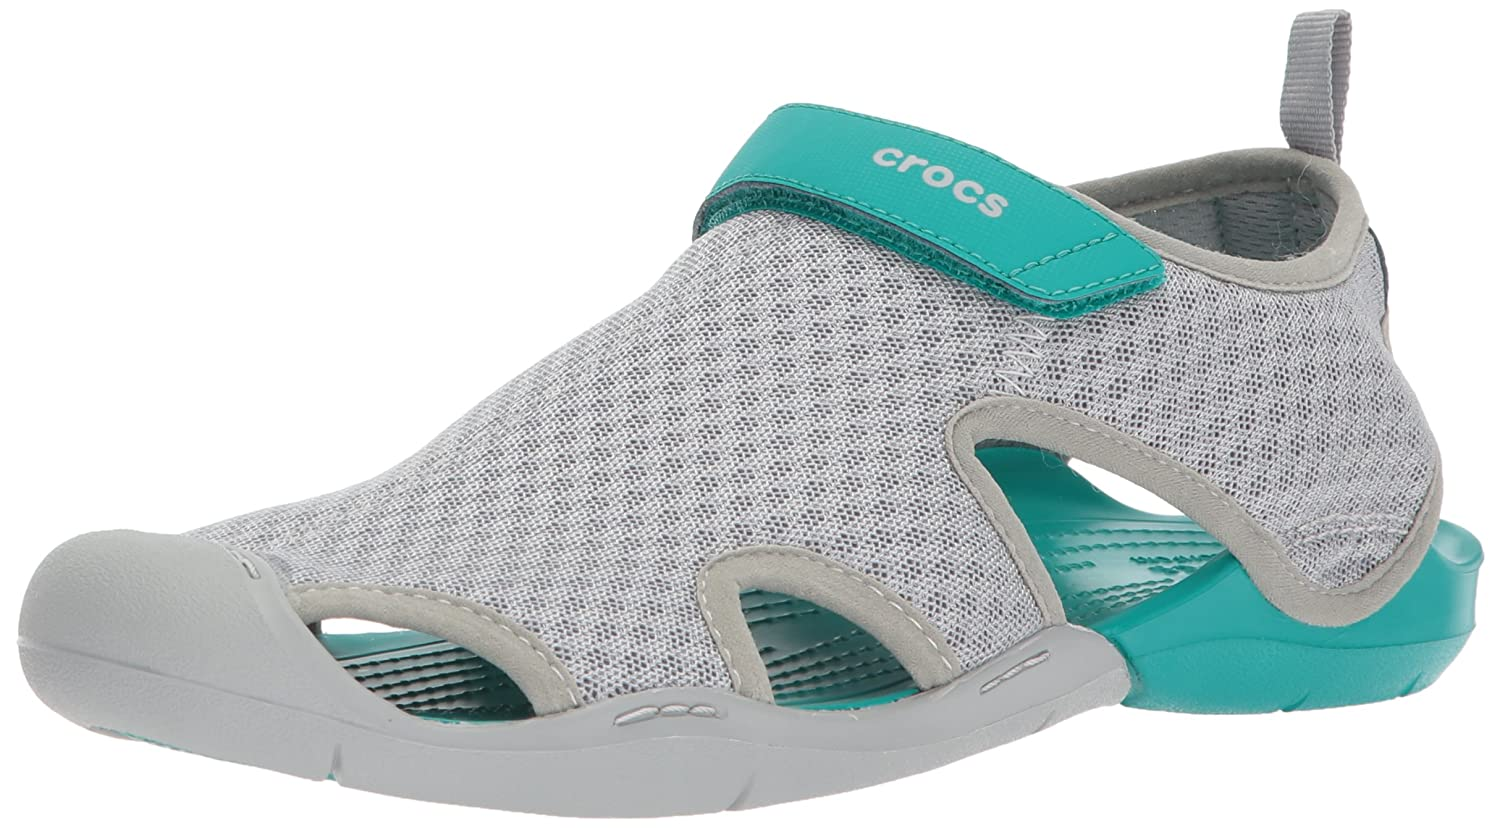 Crocs Women's Swiftwater Mesh Sandal B072J4RGR1 6 B(M) US|Light Grey